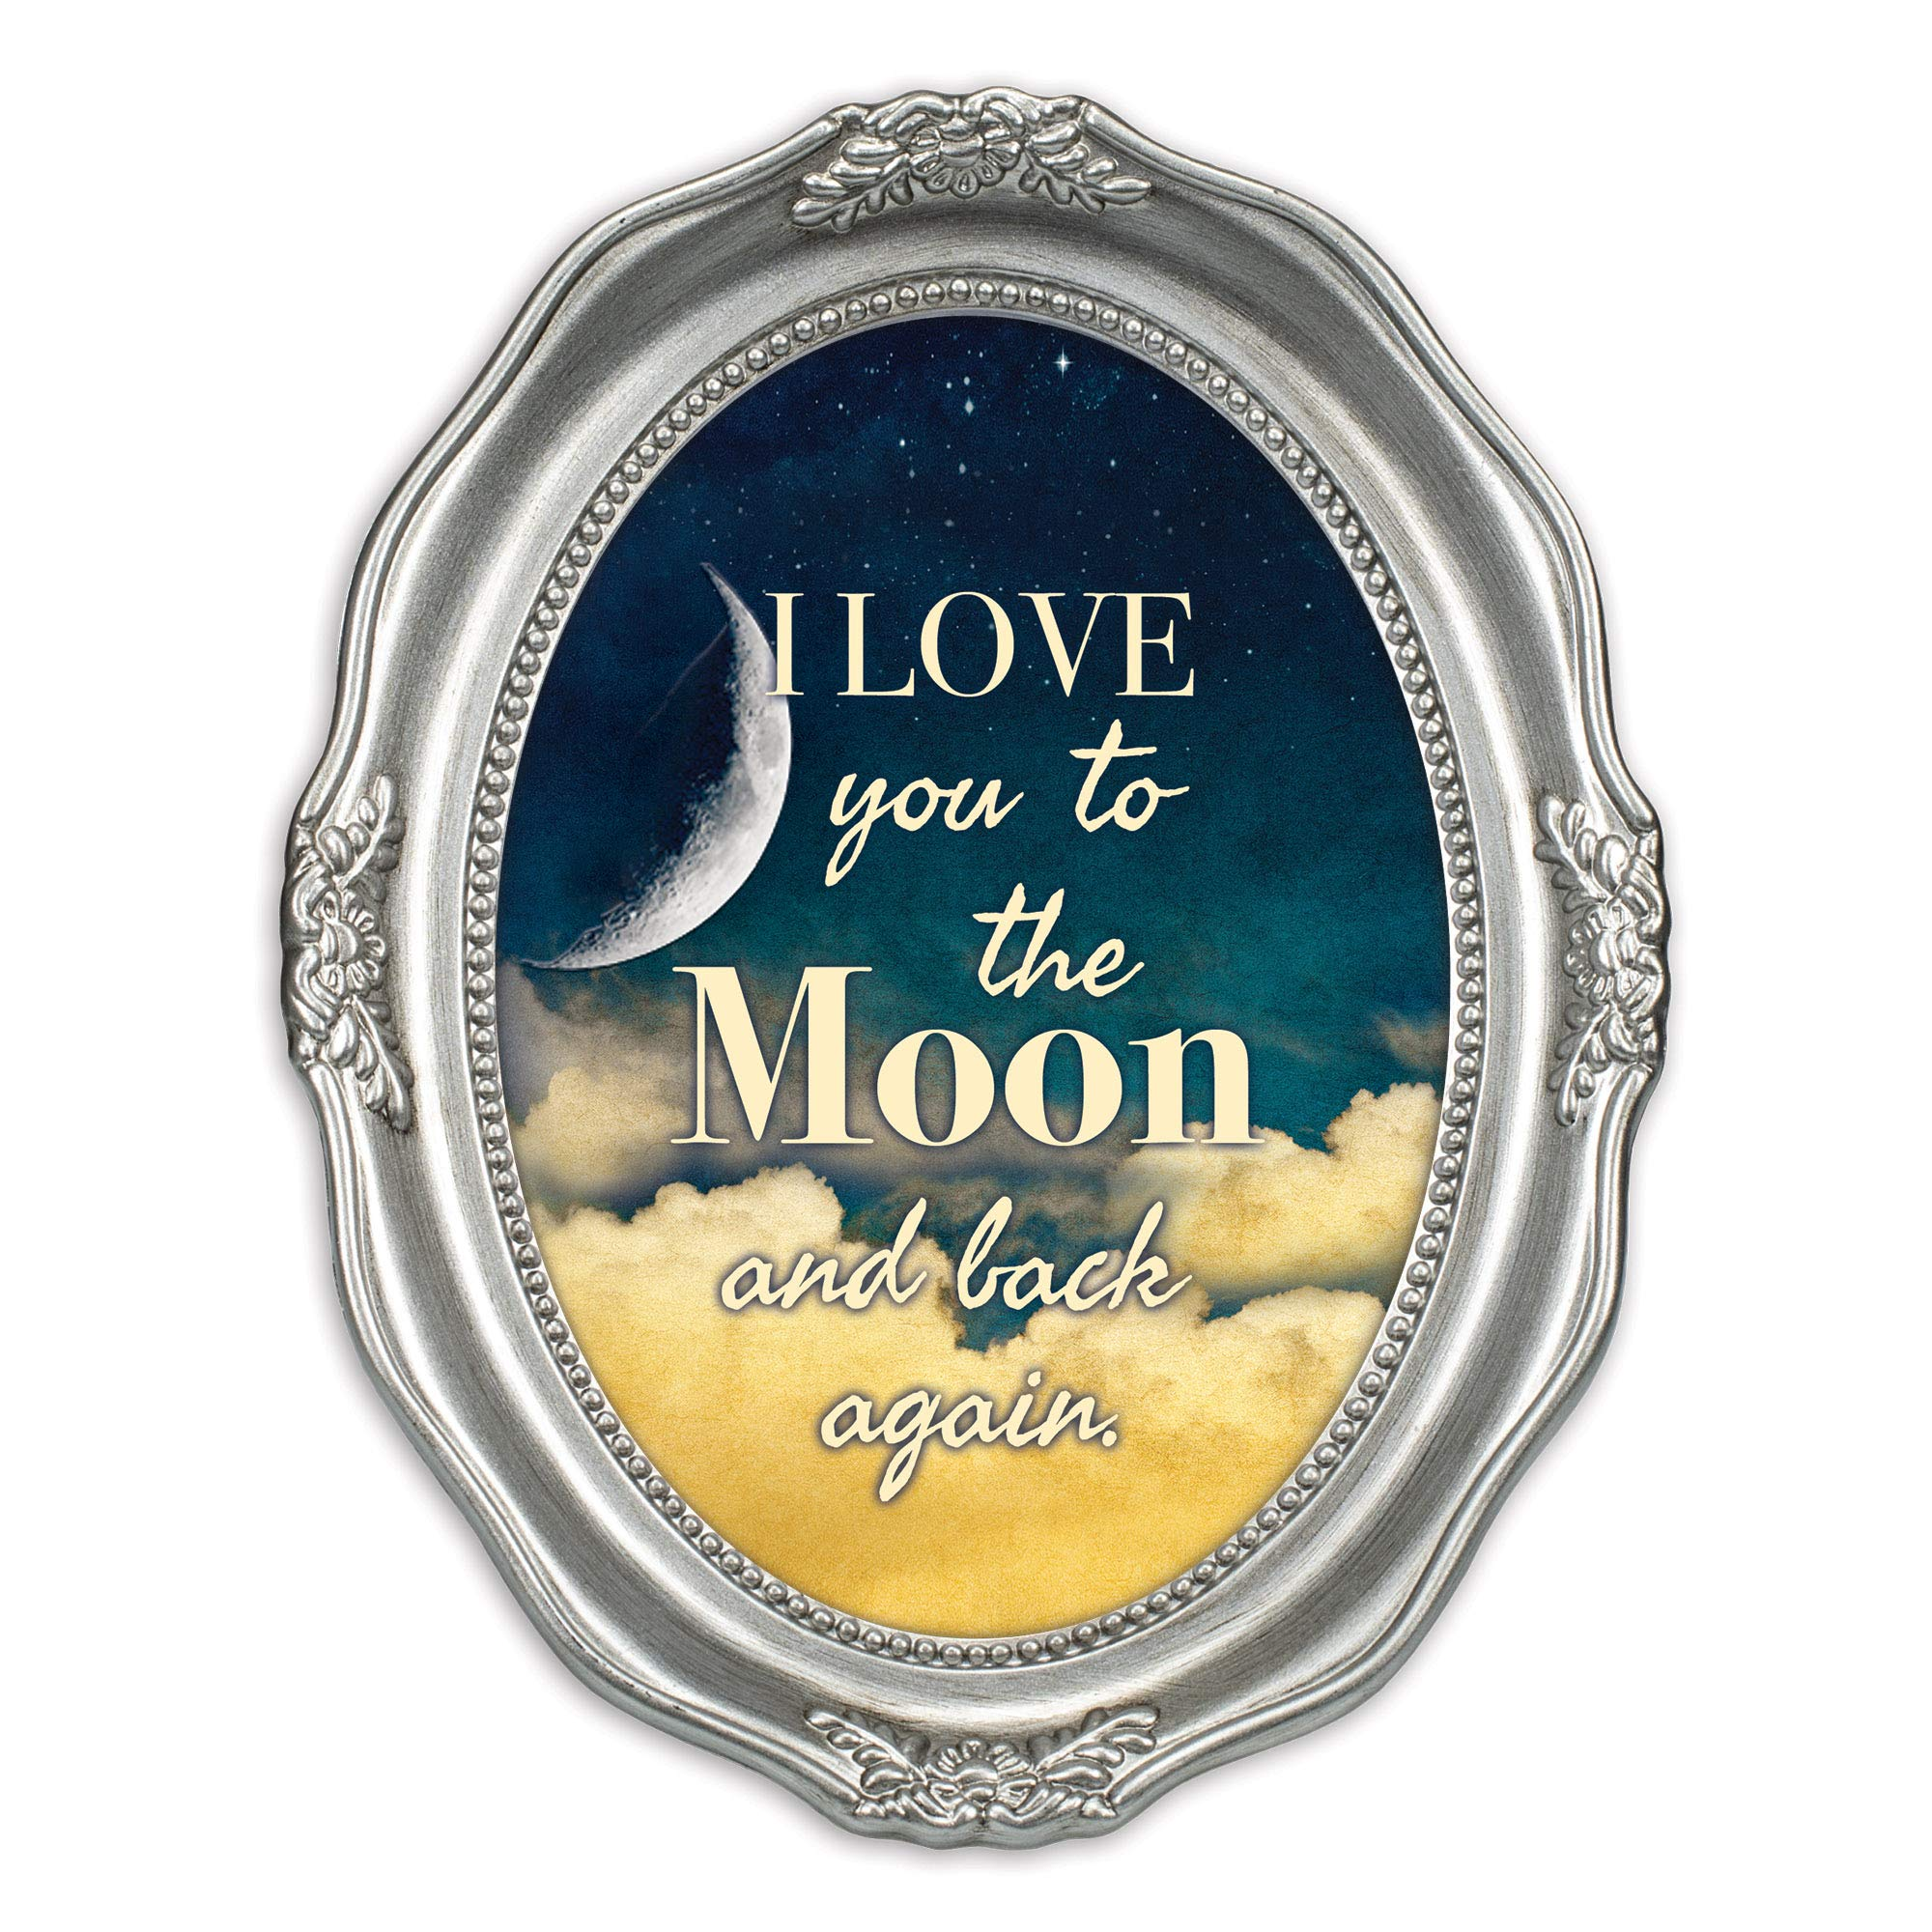 Cottage Garden I Love You to The Moon and Back Brushed Silver Wavy 5 x 7 Oval Table and Wall Photo Frame